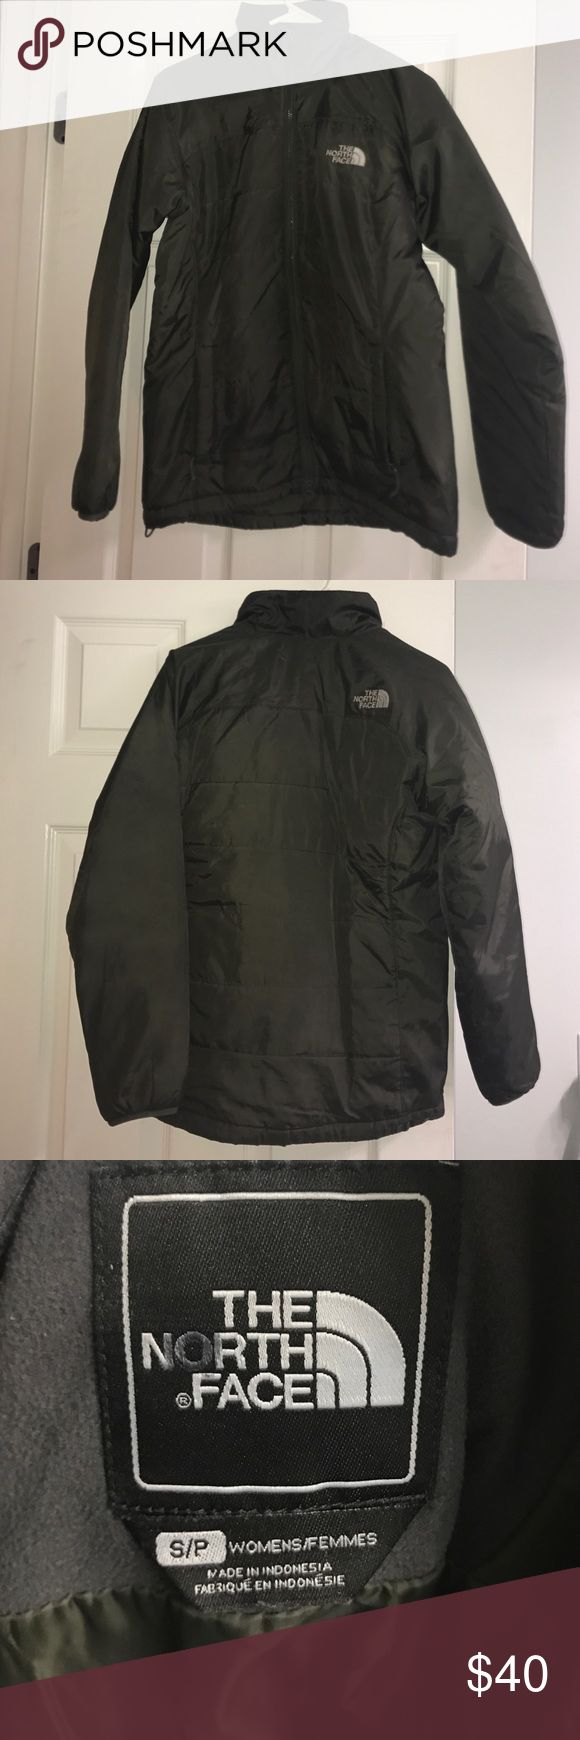 Women's North Face jacket Women's Small Army Green North Face Jacket.  Bought from the North Face Outlet. In good condition! The North Face Jackets & Coats Puffers